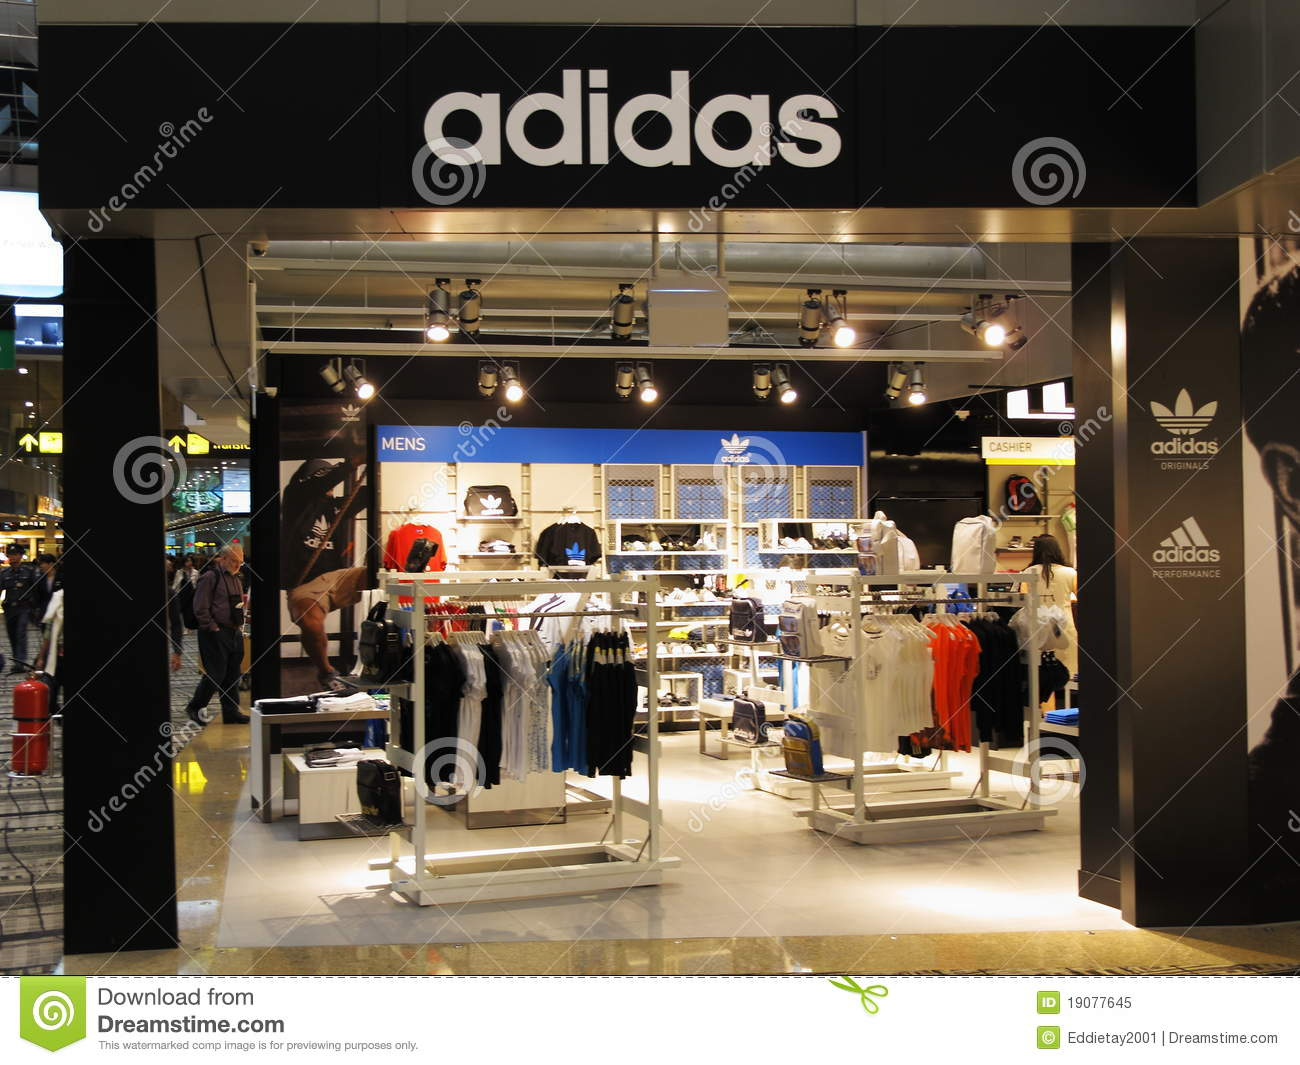 The Adidas Outlet Stores carry a wide range of workout clothing, sports gear, and footwear including shoes for various sports for men, women, and kids. According to the company, the merchandise is first quality and mostly from past seasons. Getting the Best Prices.